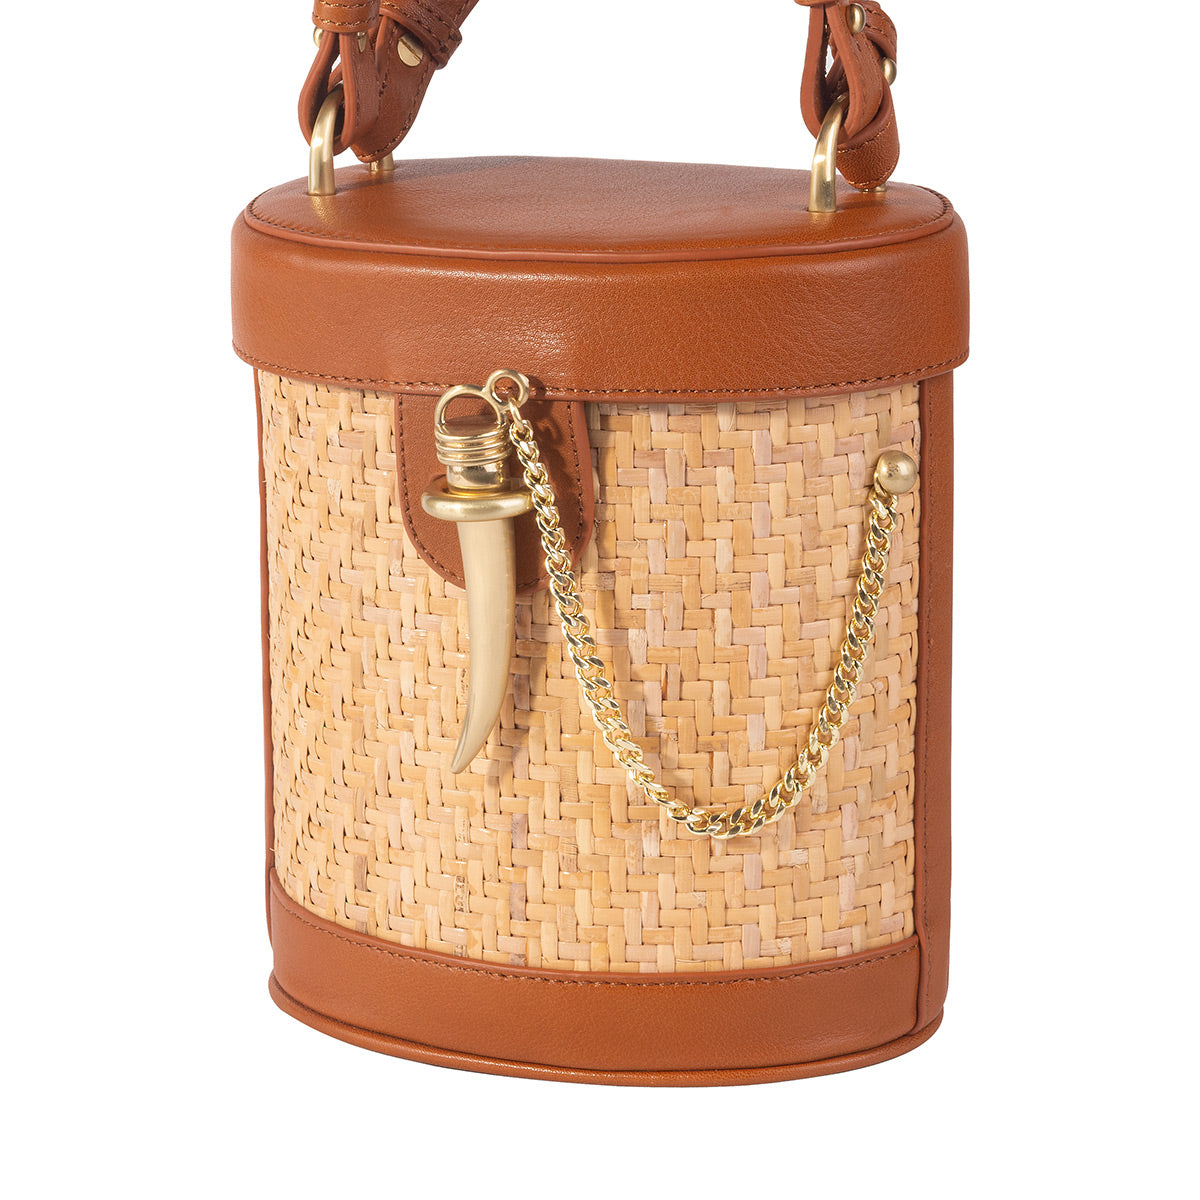 THE CAMILLO BUCKET BAG